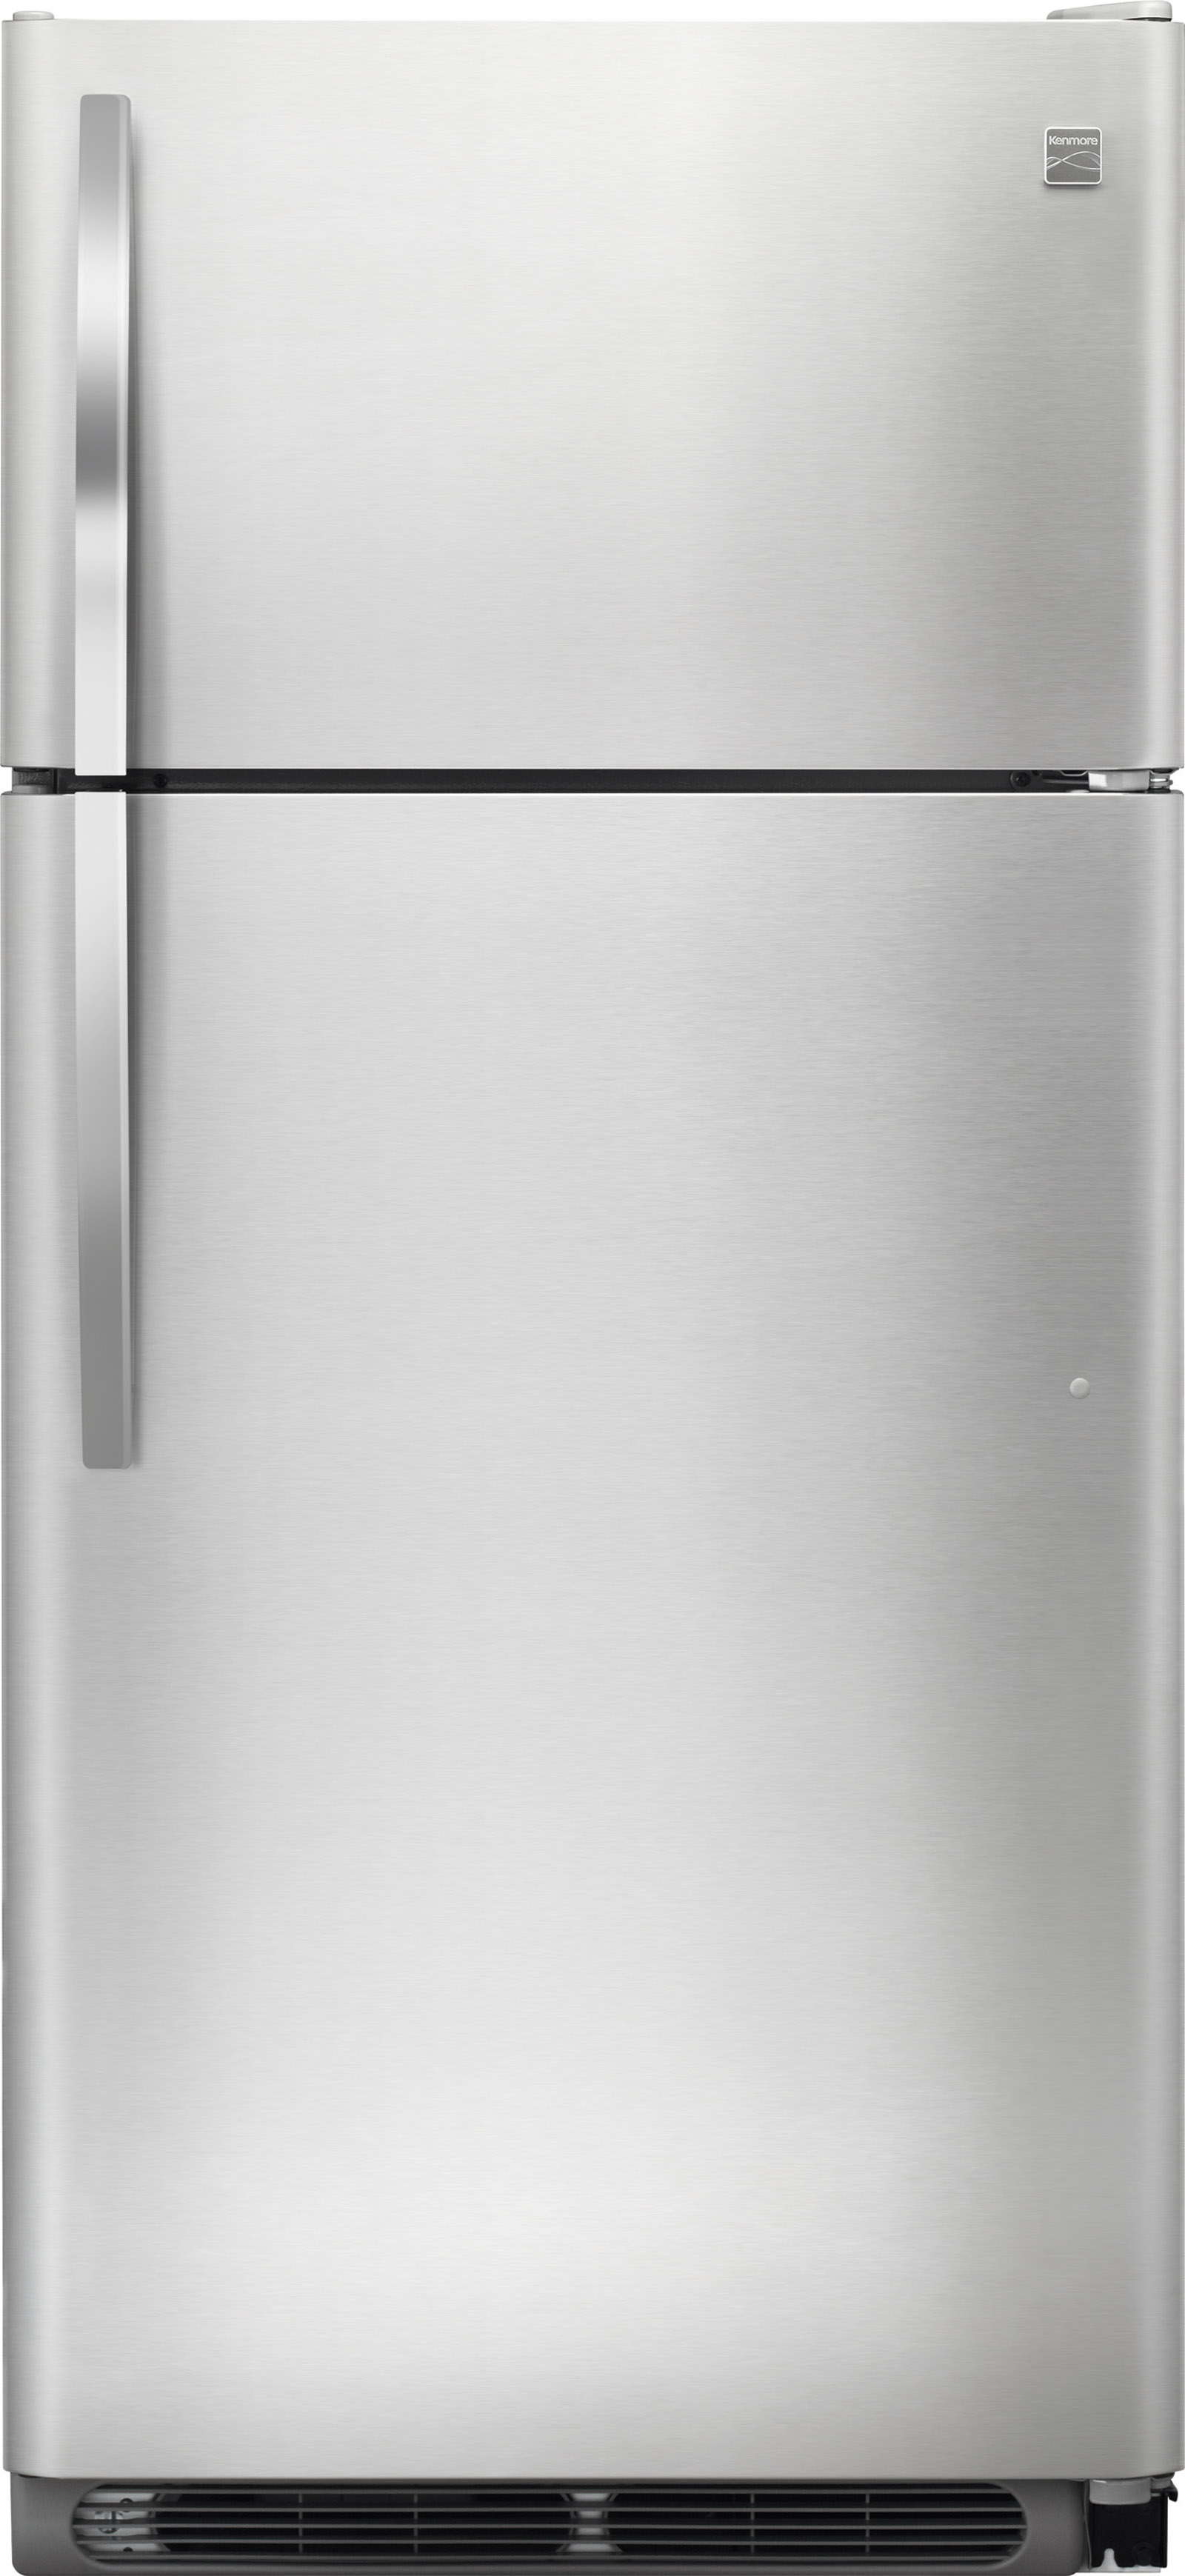 Kenmore 70505 18 cu. ft. Top Freezer Refrigerator - Stainless Steel